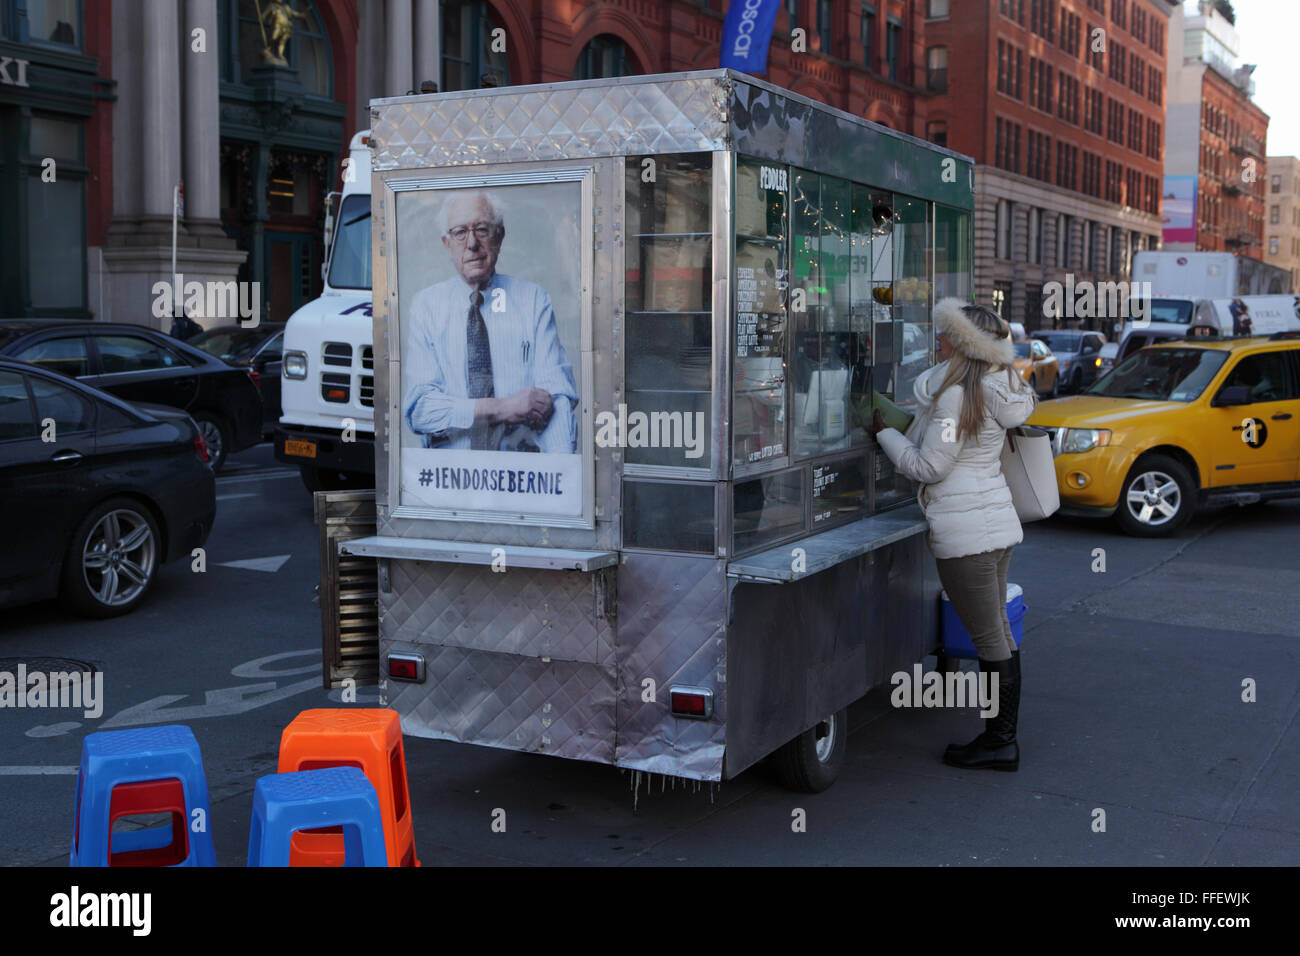 New York coffee cart displaying a photo endorsing US presidential candidate Bernie Sanders, Democrat Vermont - Stock Image